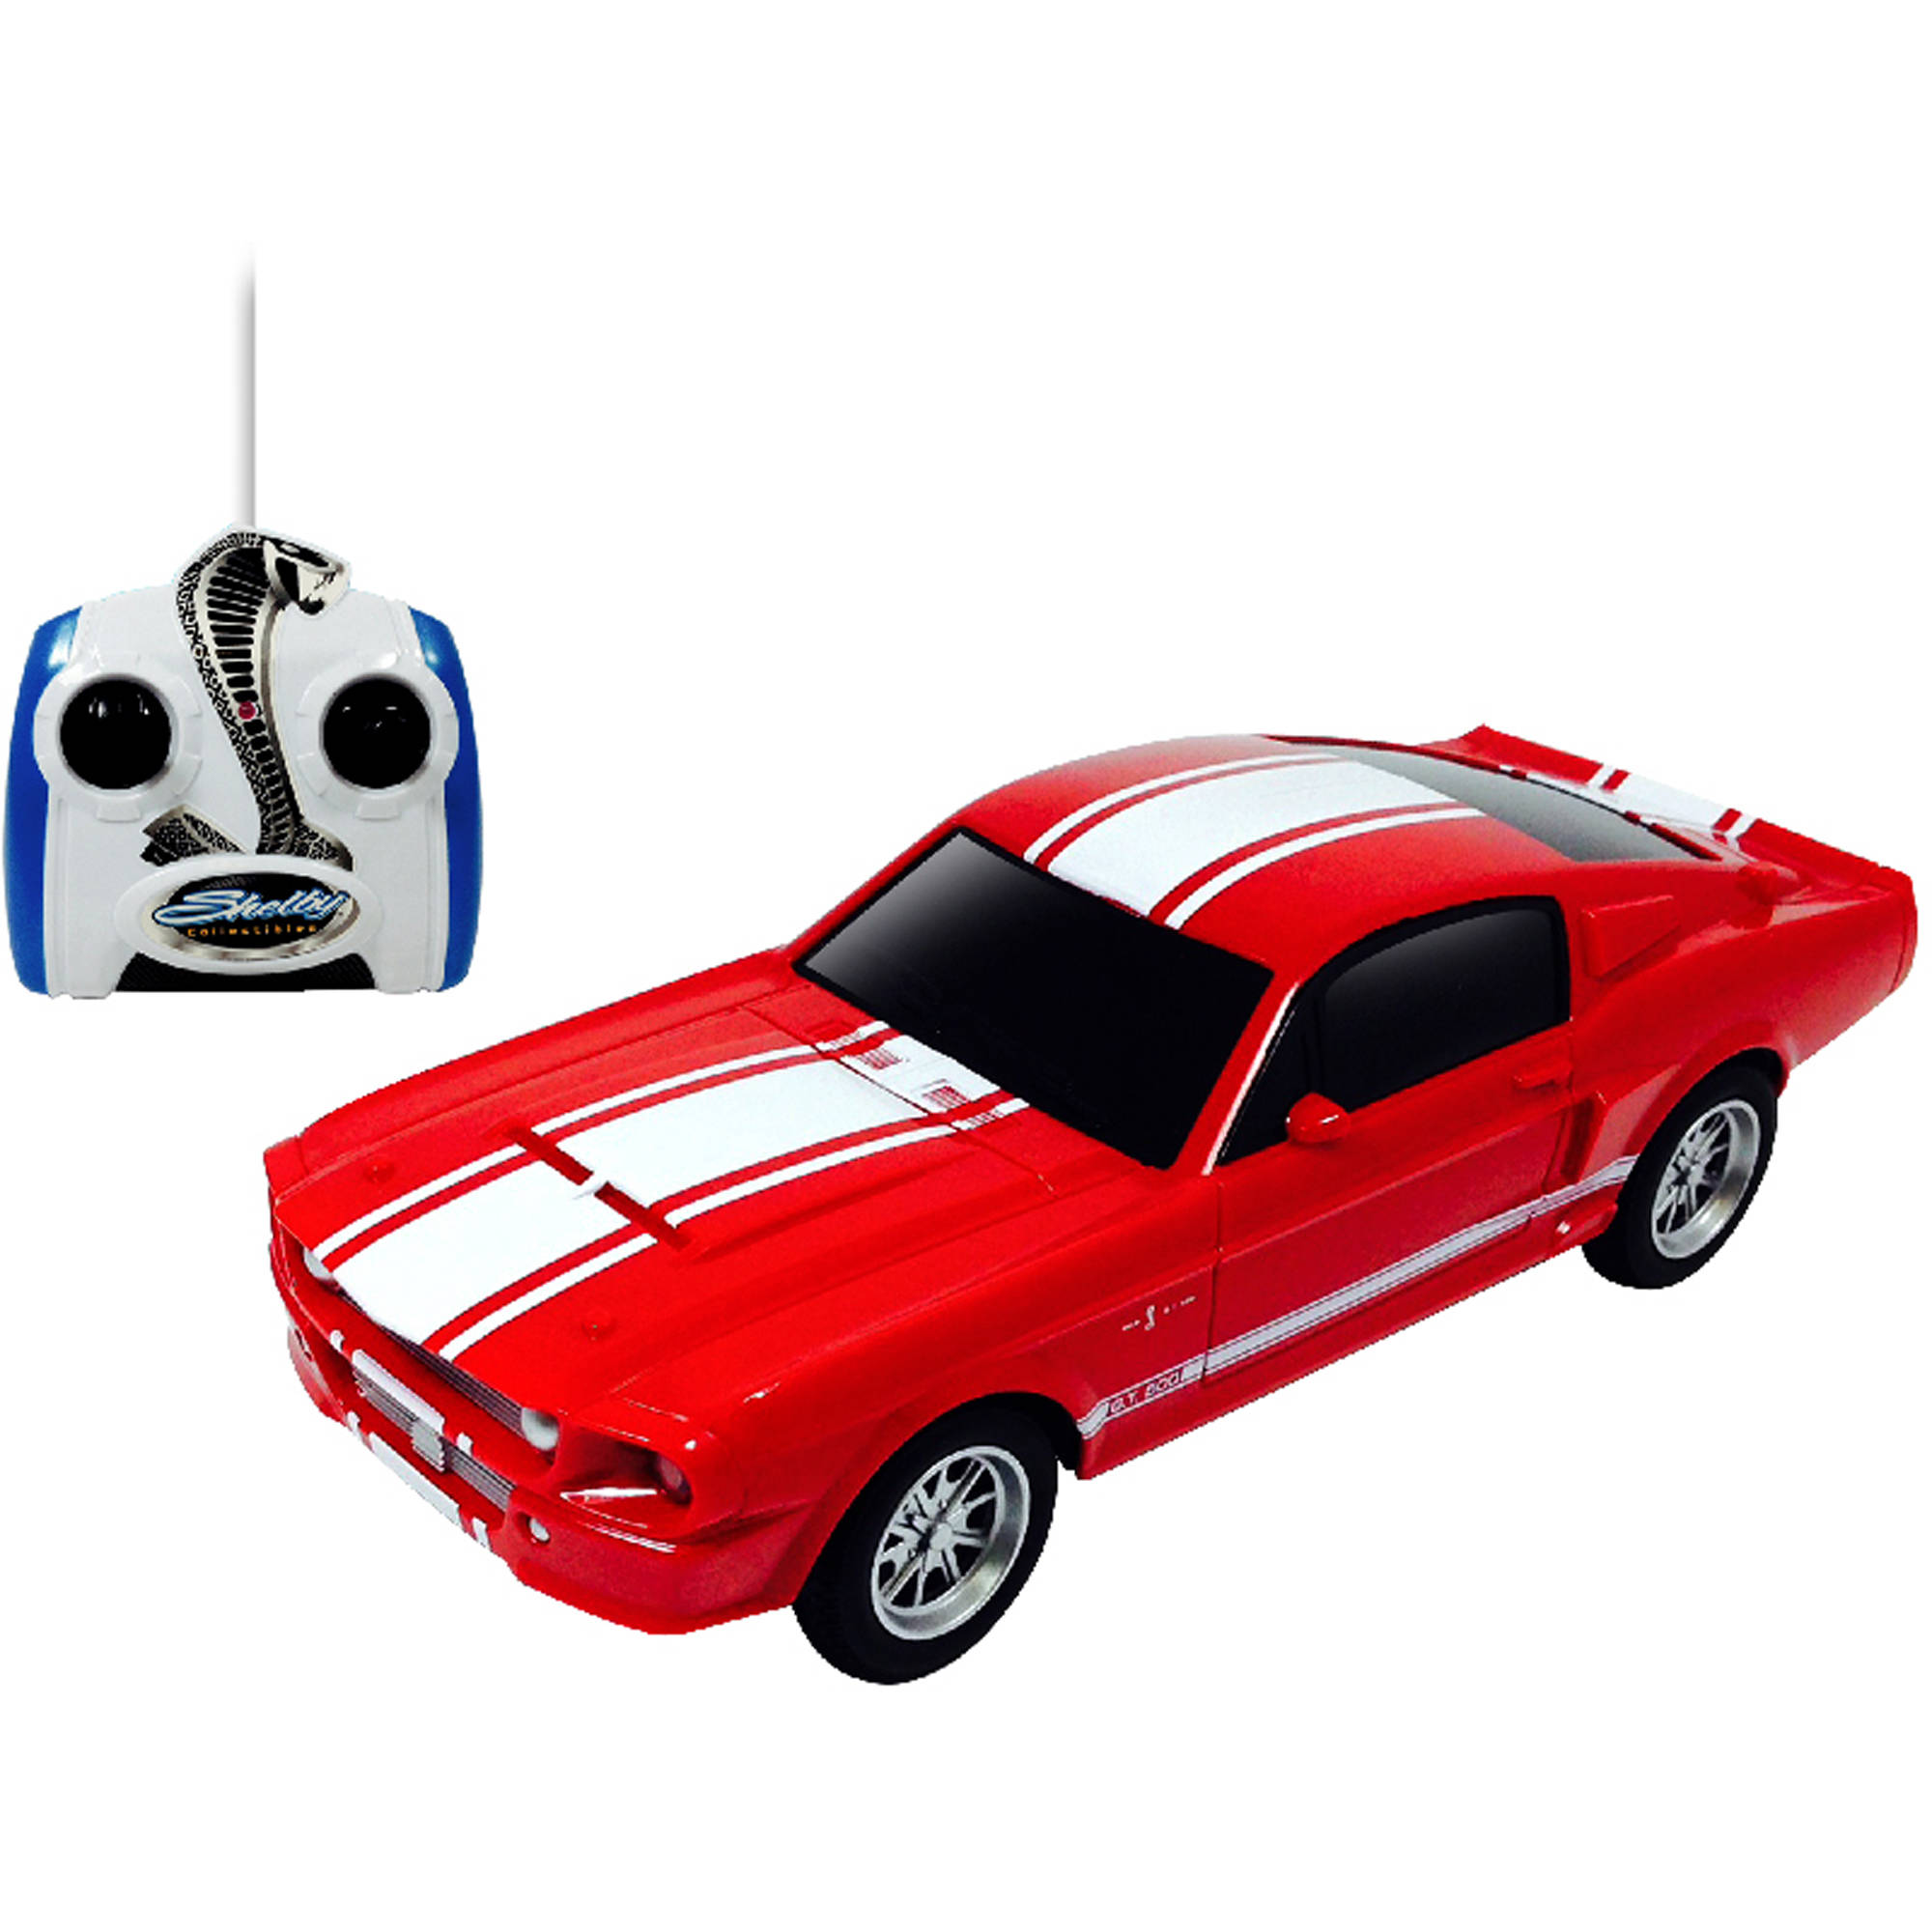 Jam N Products Mustang Shelby Gt500 Remote Control Vehicle